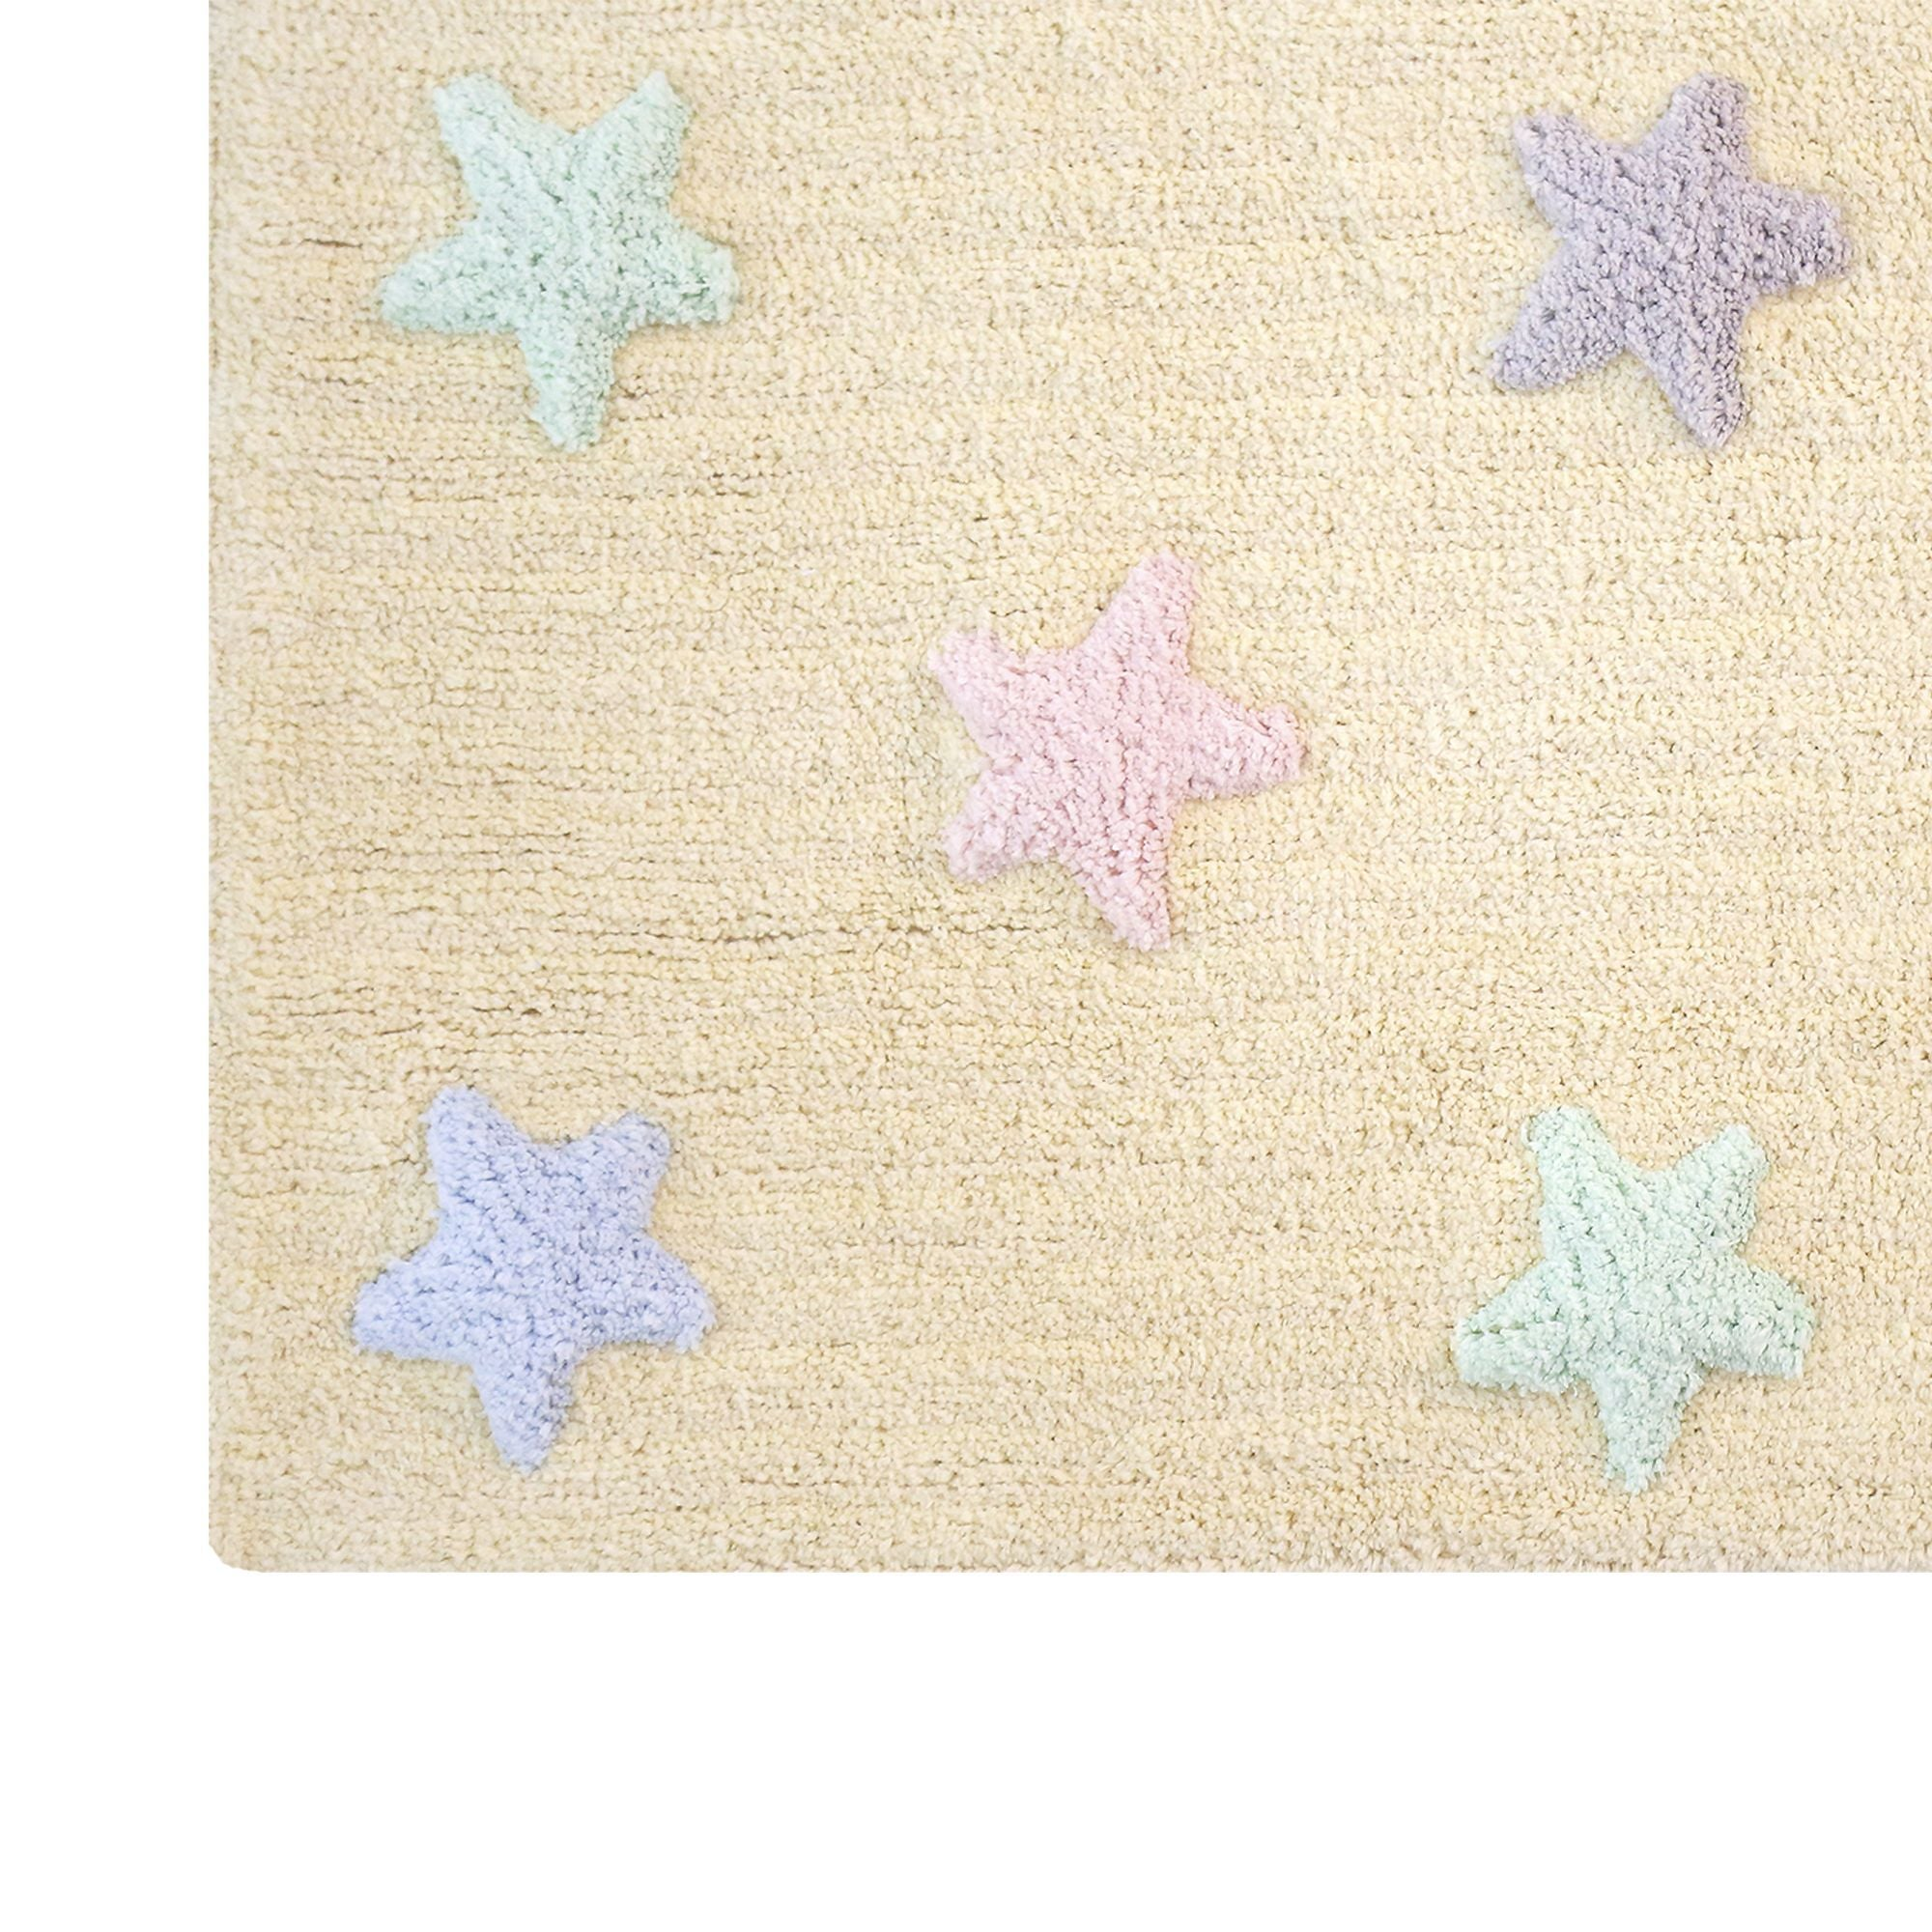 Tricolor Stars Rug in Vanilla design by Lorena Canals